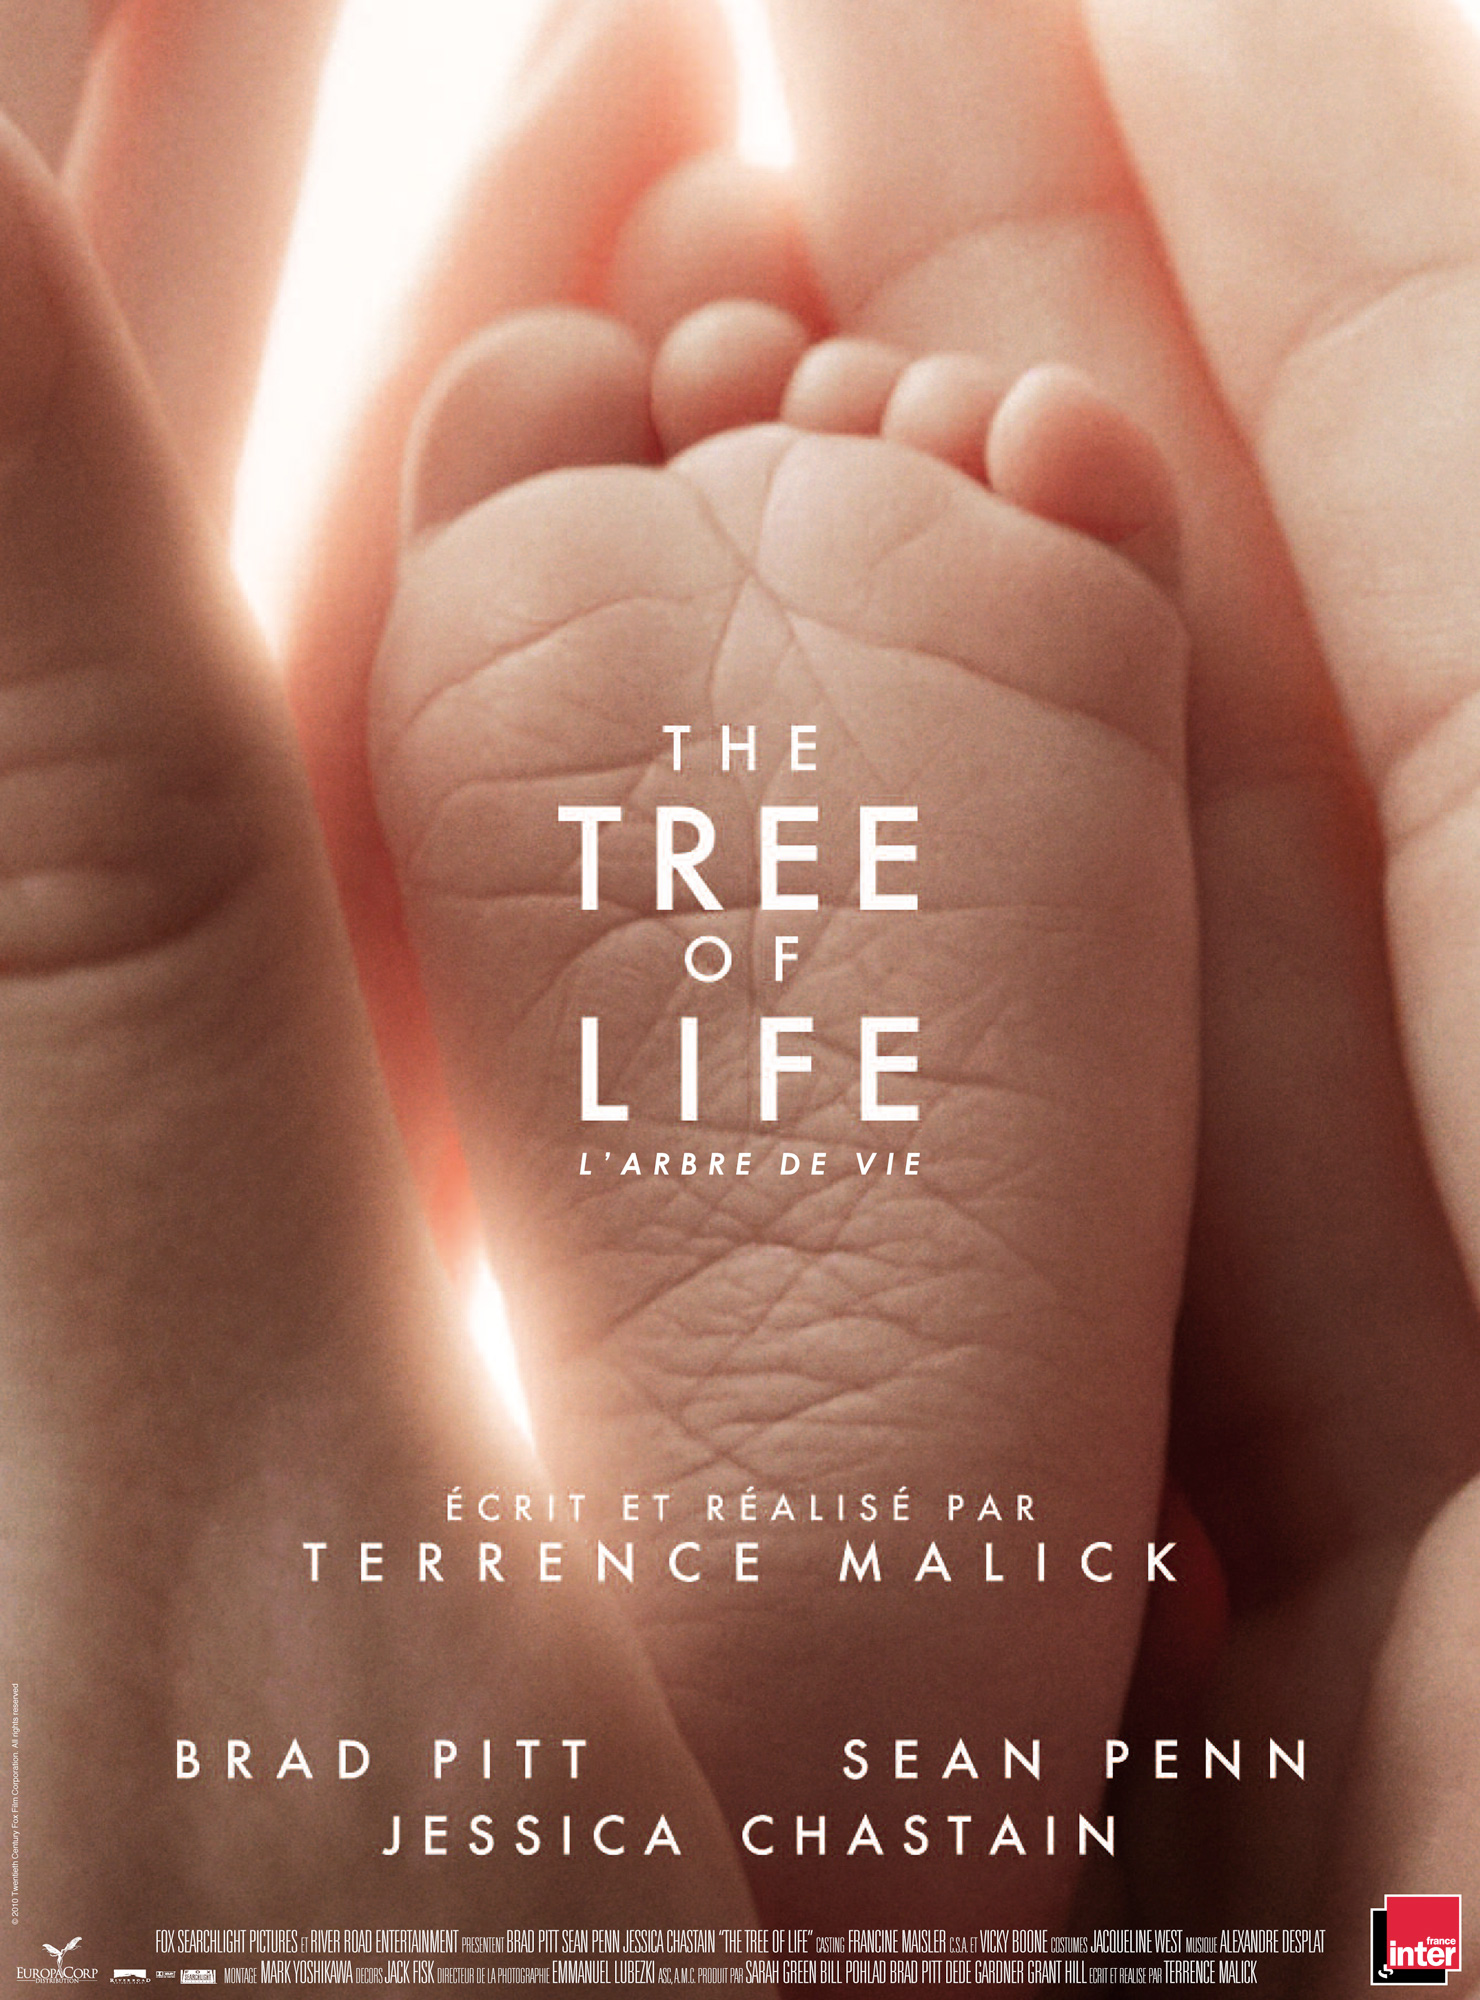 The-Tree-of-Life-L_Arbre-de-Vie-Affiche-Teaser-France.jpg